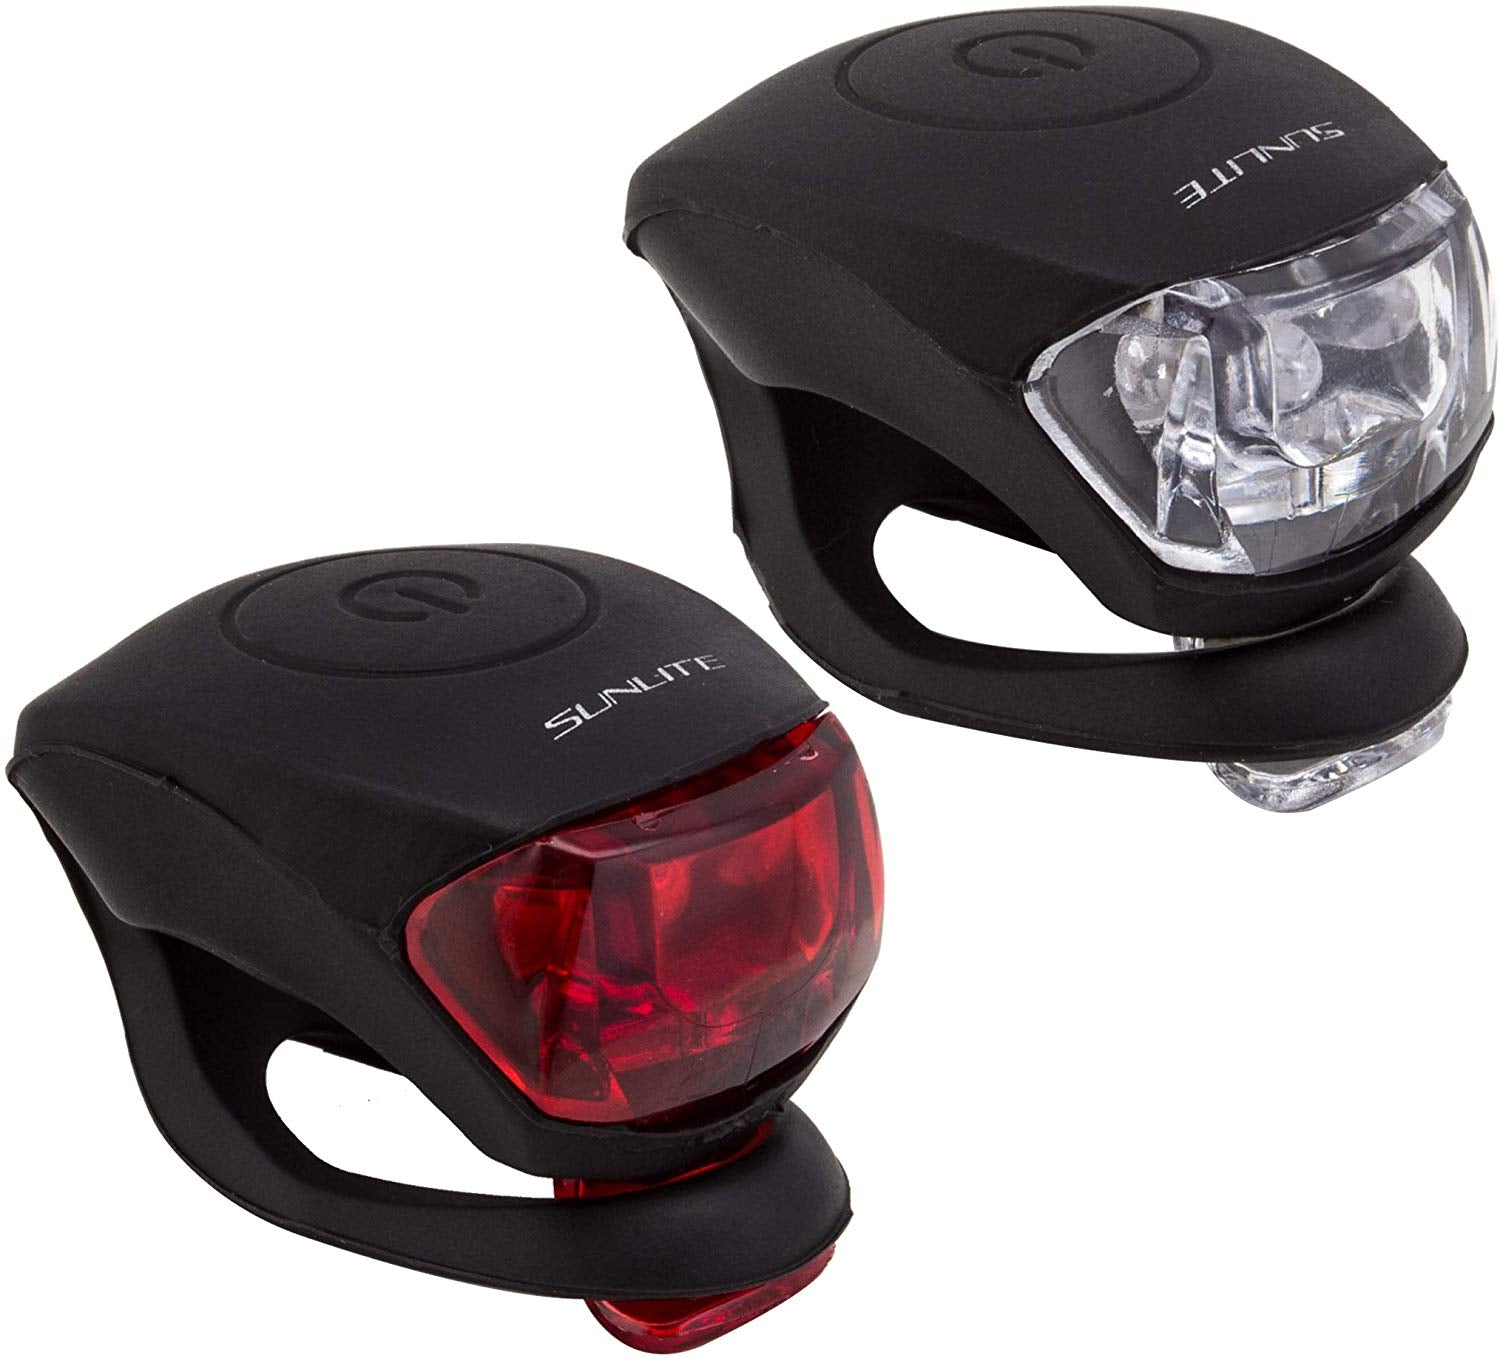 Sunlite Griplite Headlight/Tail Light Combo Set